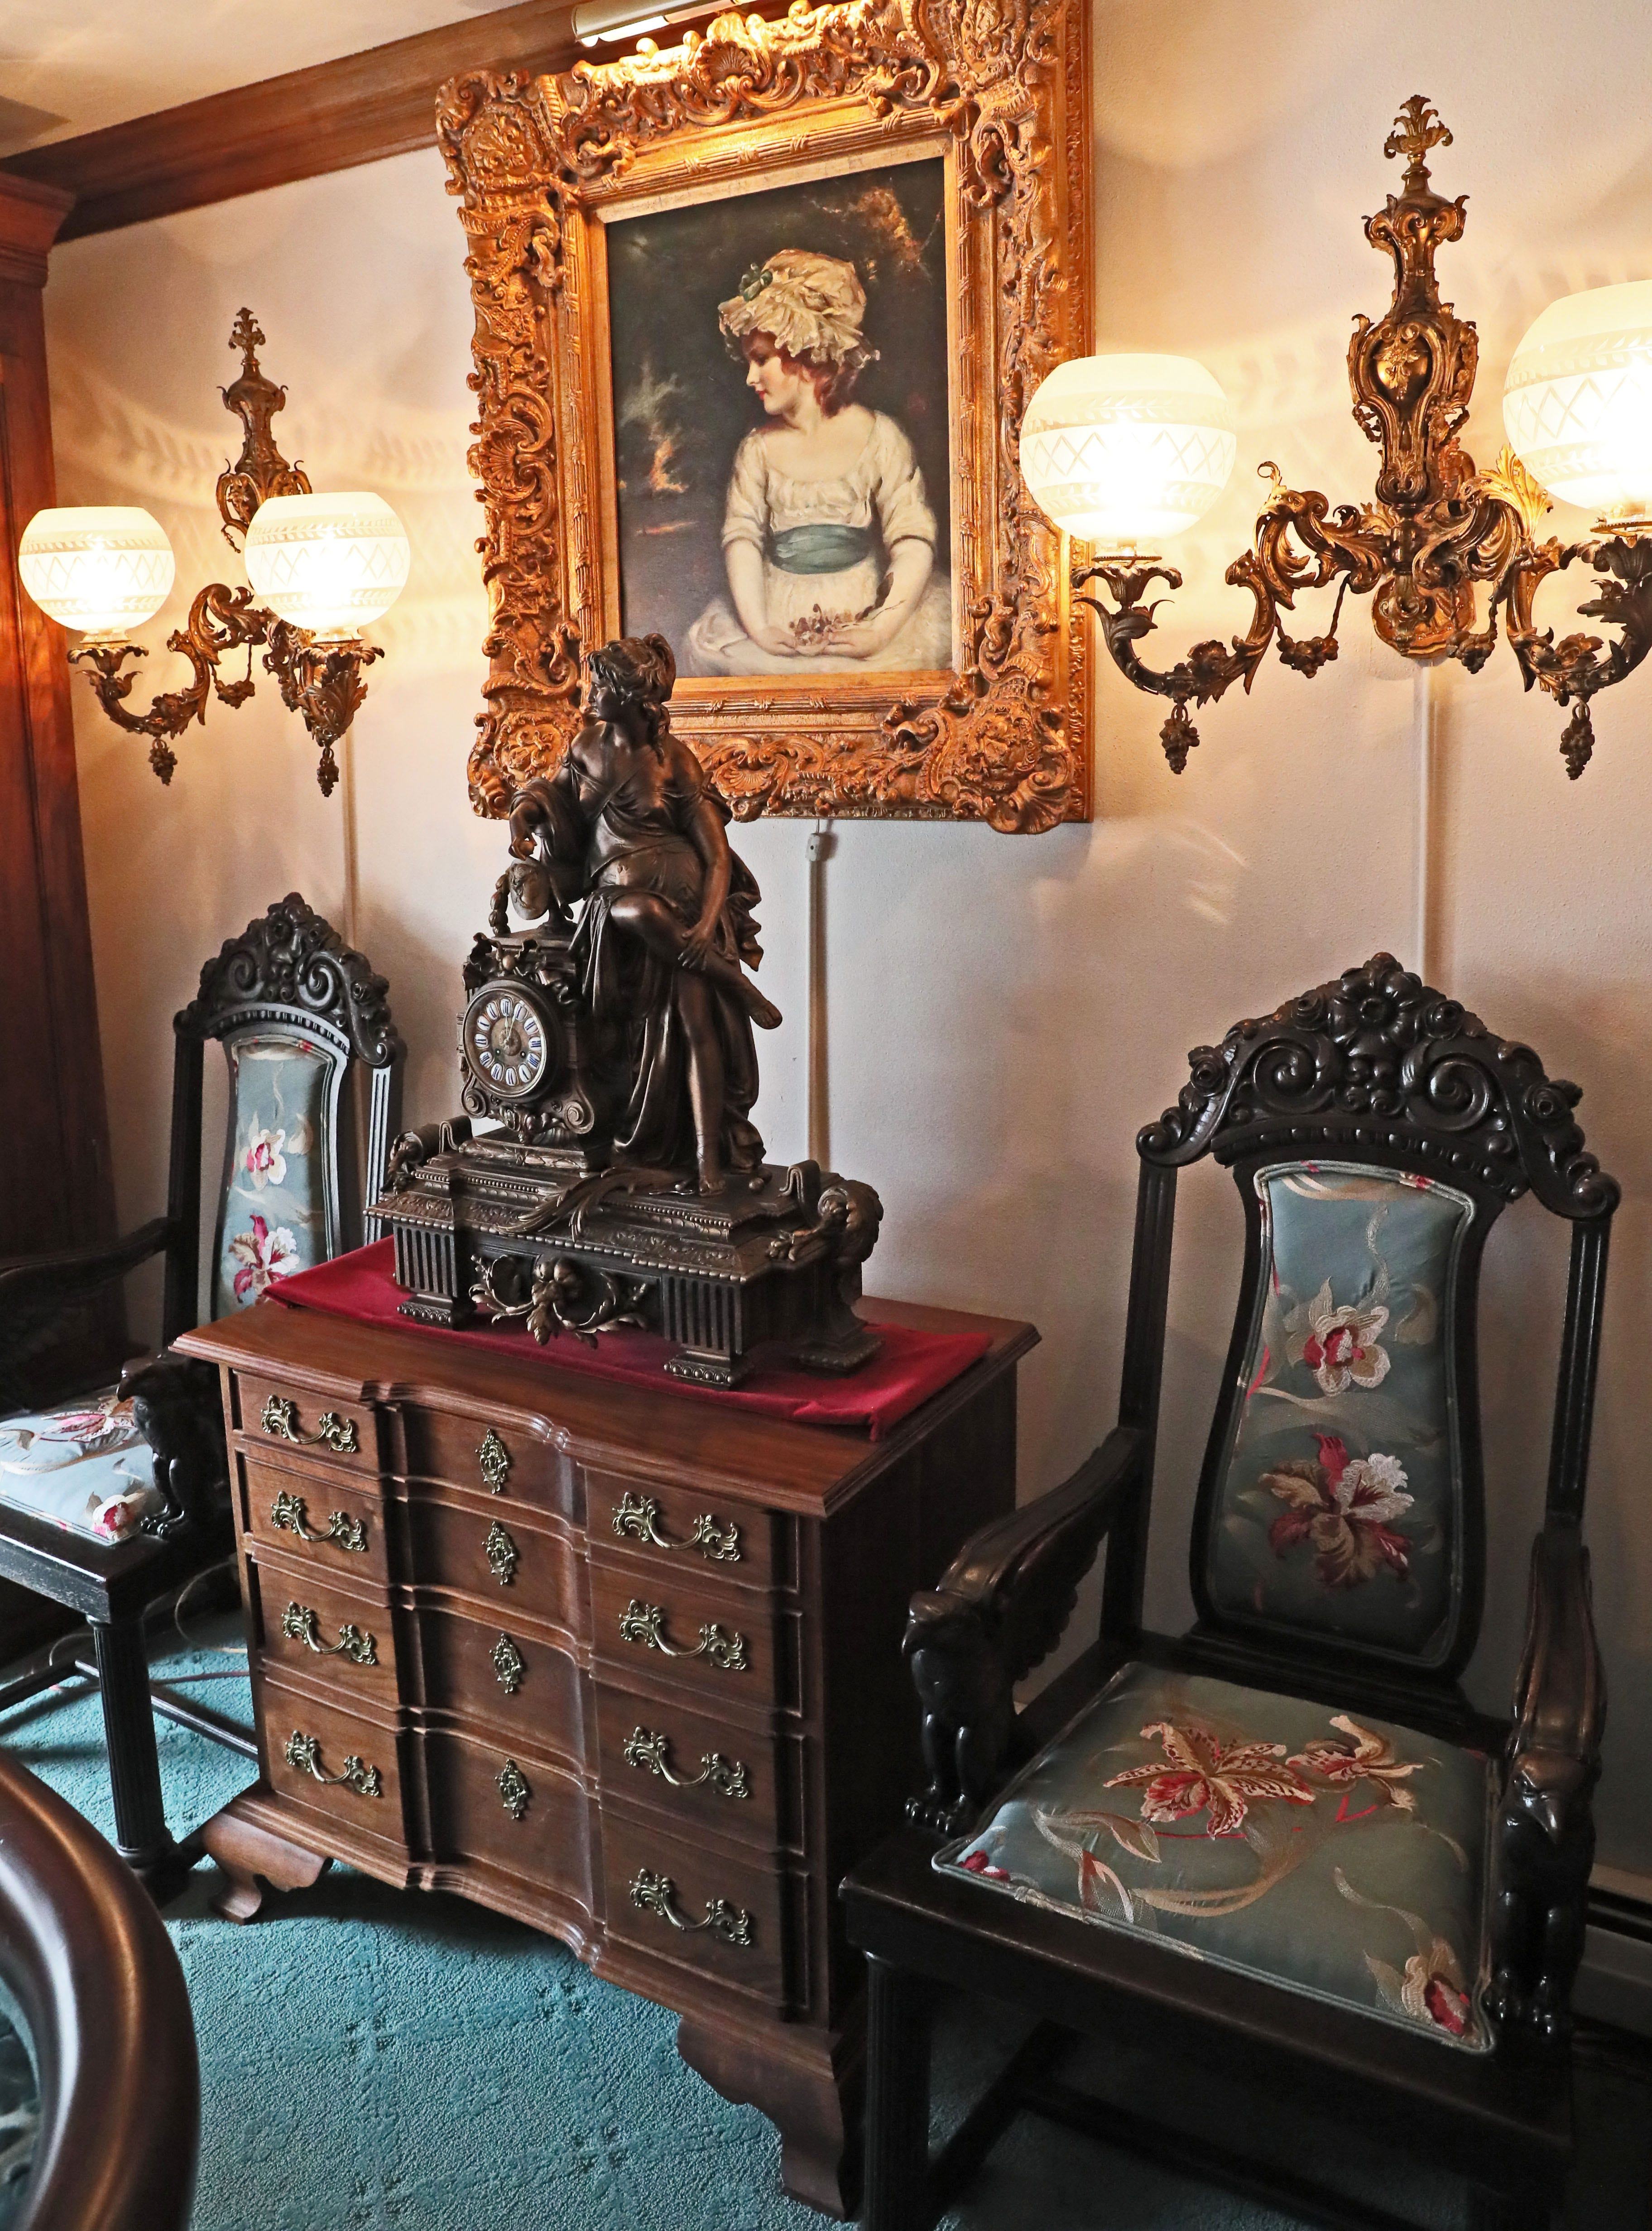 Living room antique furniture French Jim Wissing Built This Block Front Chest Of Walnut That Stands In The Living Room Milwaukee Journal Sentinel Victorian Antiques Decor Have Transformed This Suburban Ranch Home